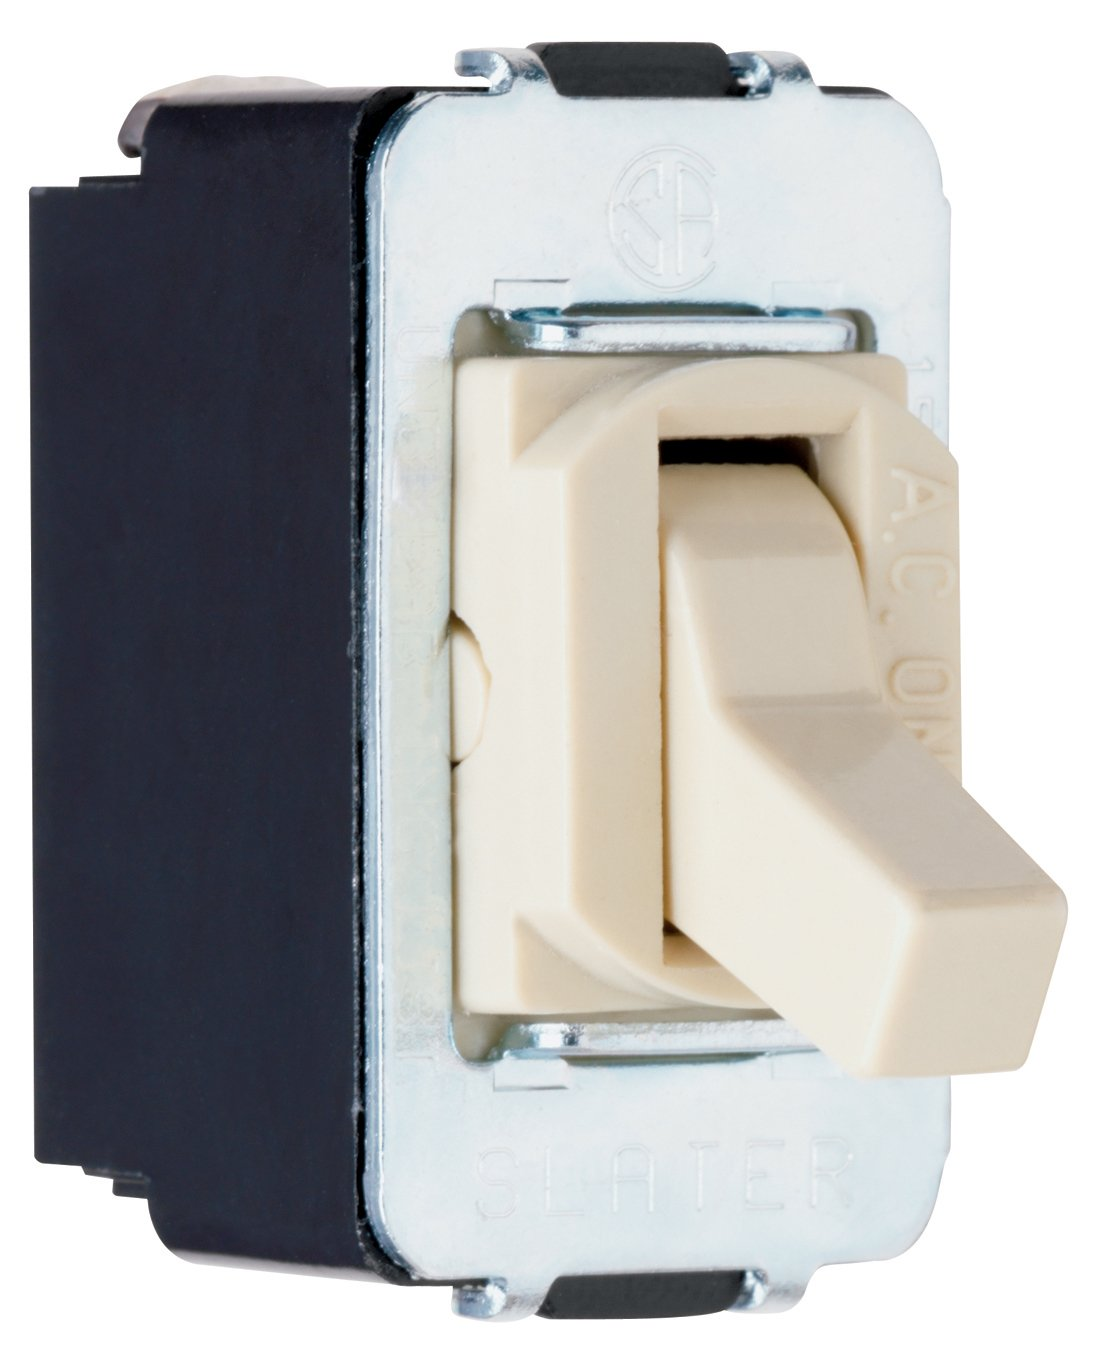 Legrand Pass Seymour Acd1icc8 Despard Toggle Switch Single Pole Wiring A 3 Way 15 Amp 120 277 Volt Ivory Wall Light Switches